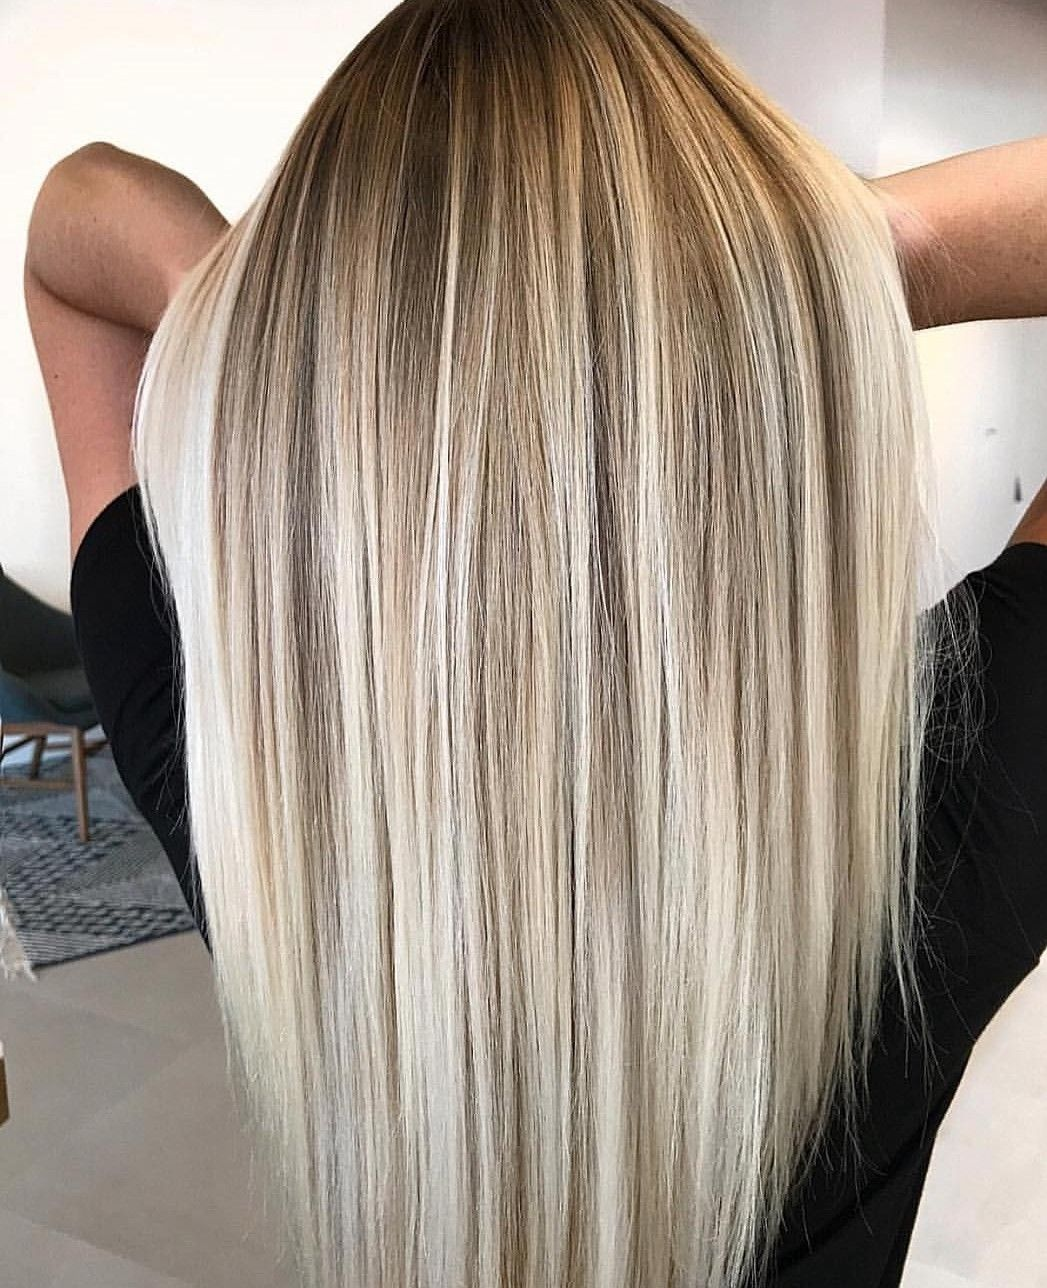 Pin By Cheryl Angulo On Makeup Hair Blonde Hair With Roots Black Roots Blonde Hair Balayage Hair